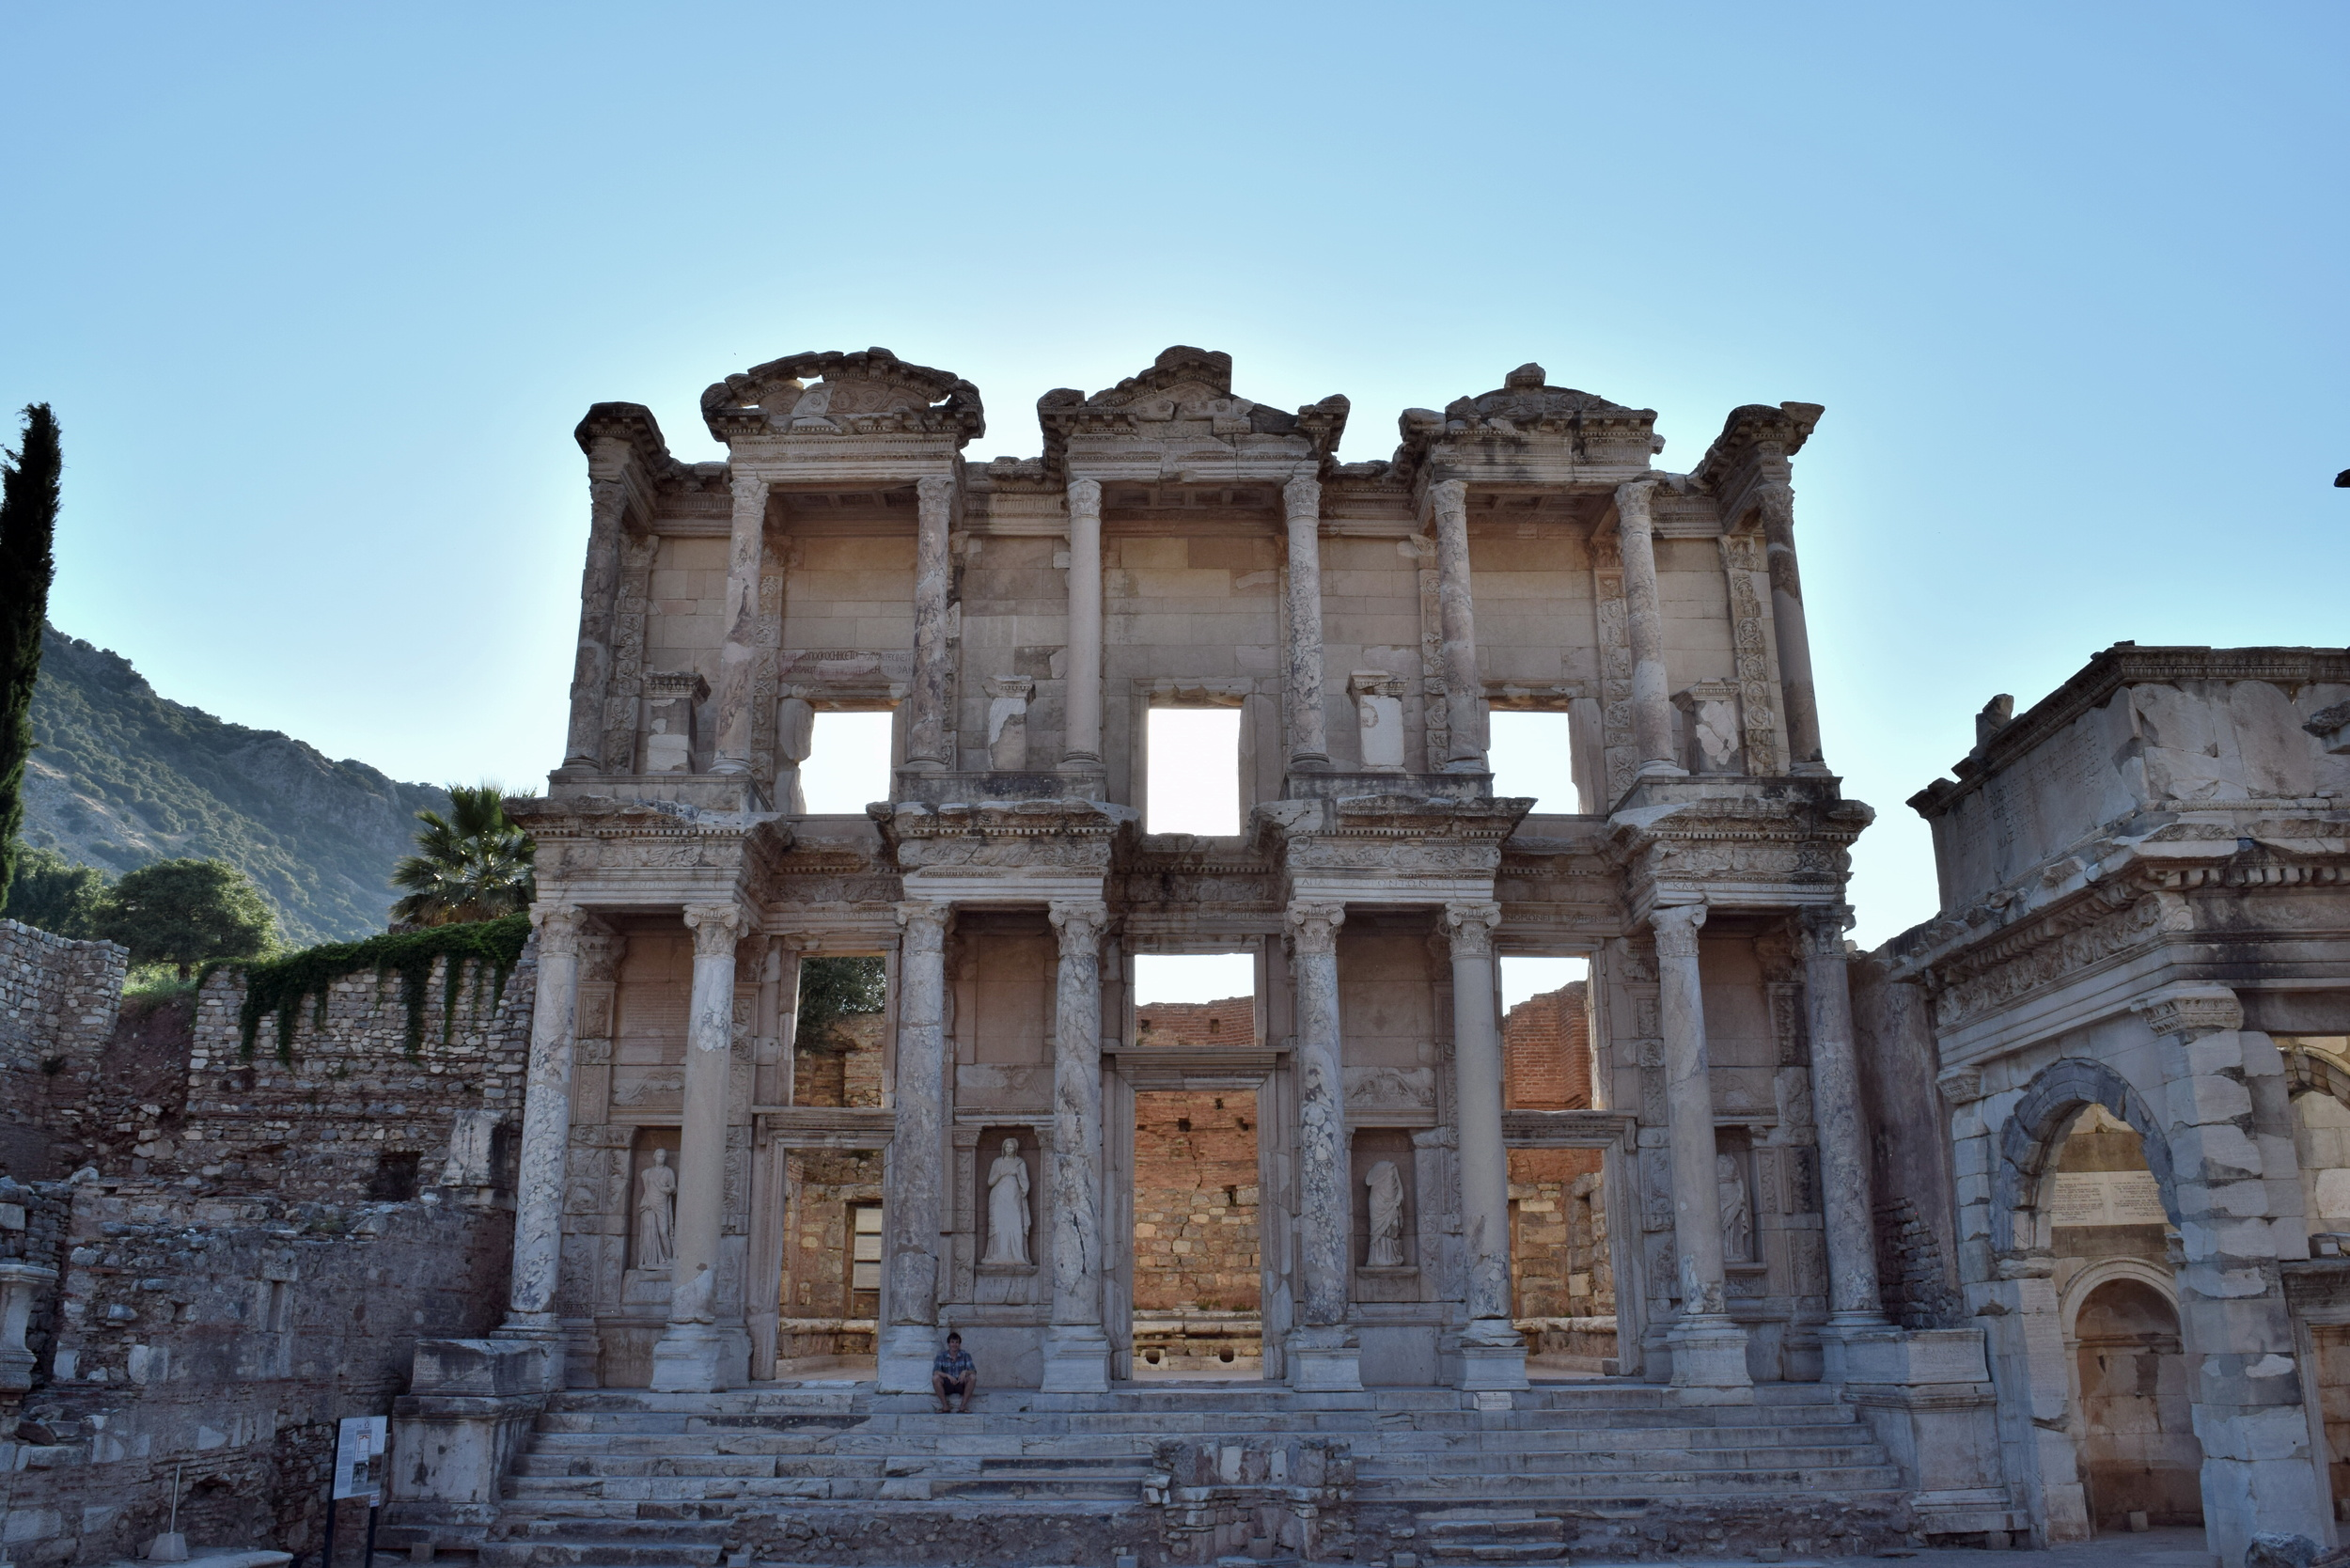 Façade of the Library of Celsus